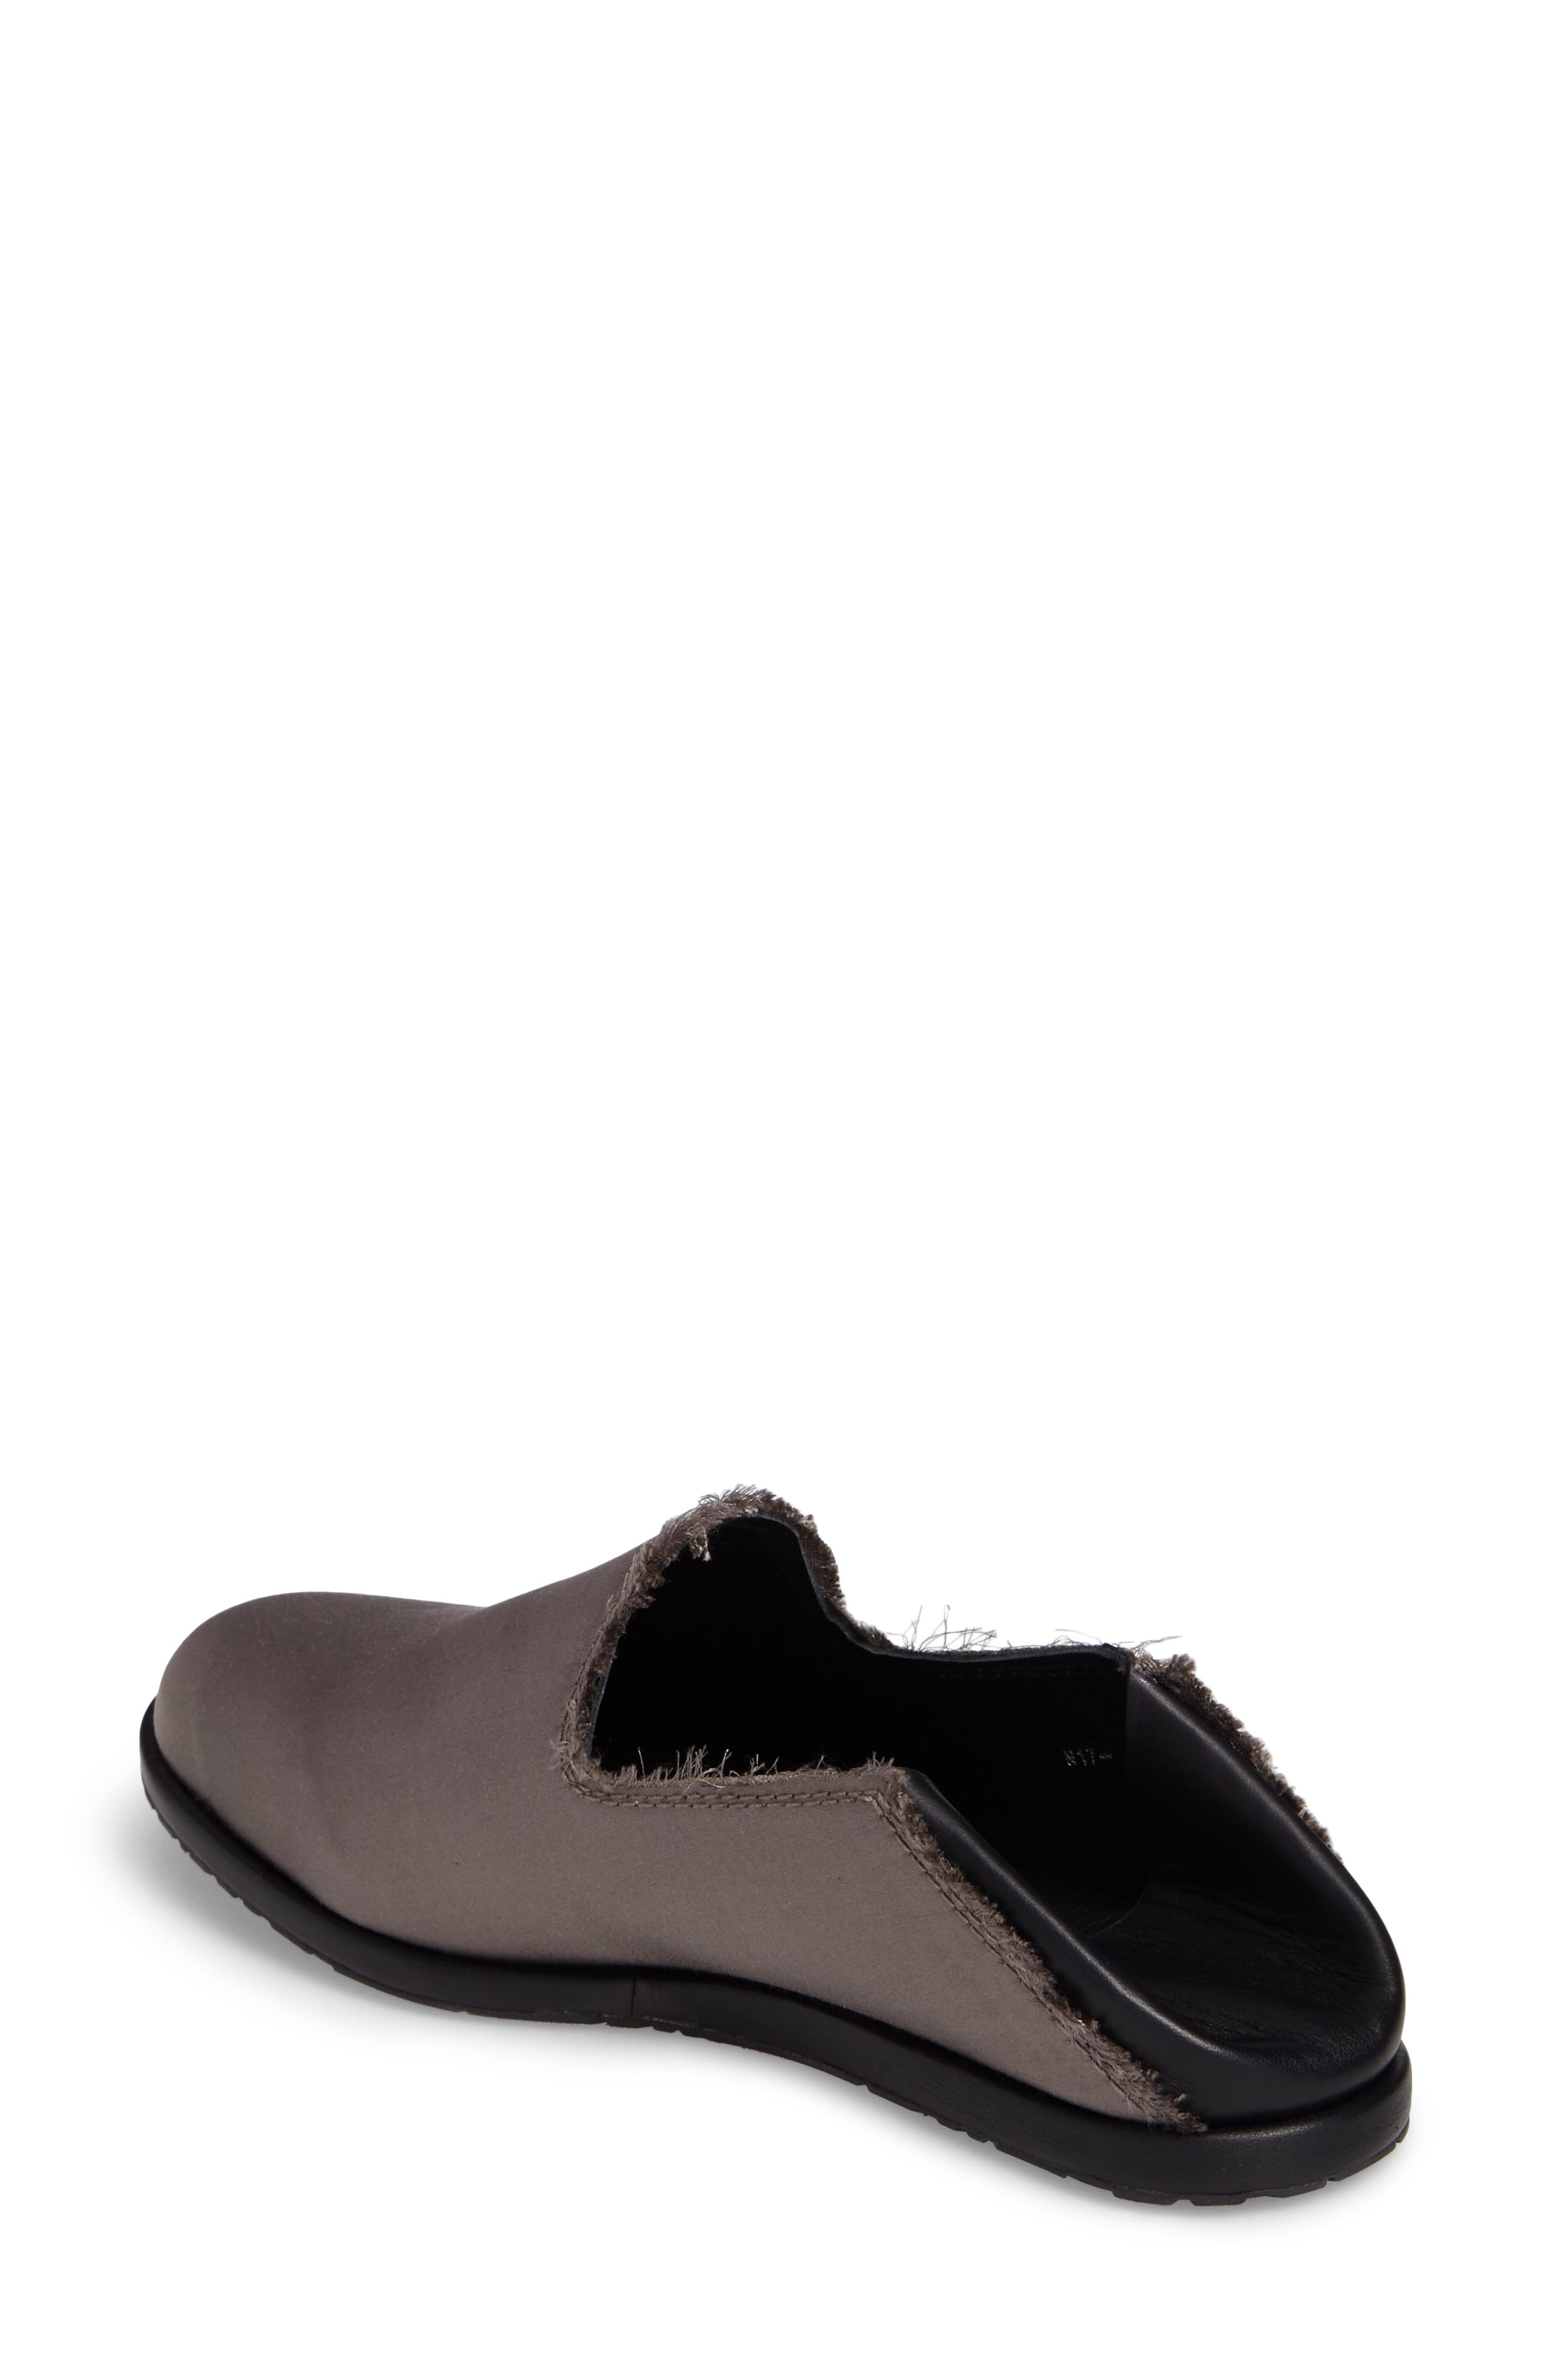 Yamir Convertible Loafer,                             Alternate thumbnail 3, color,                             020